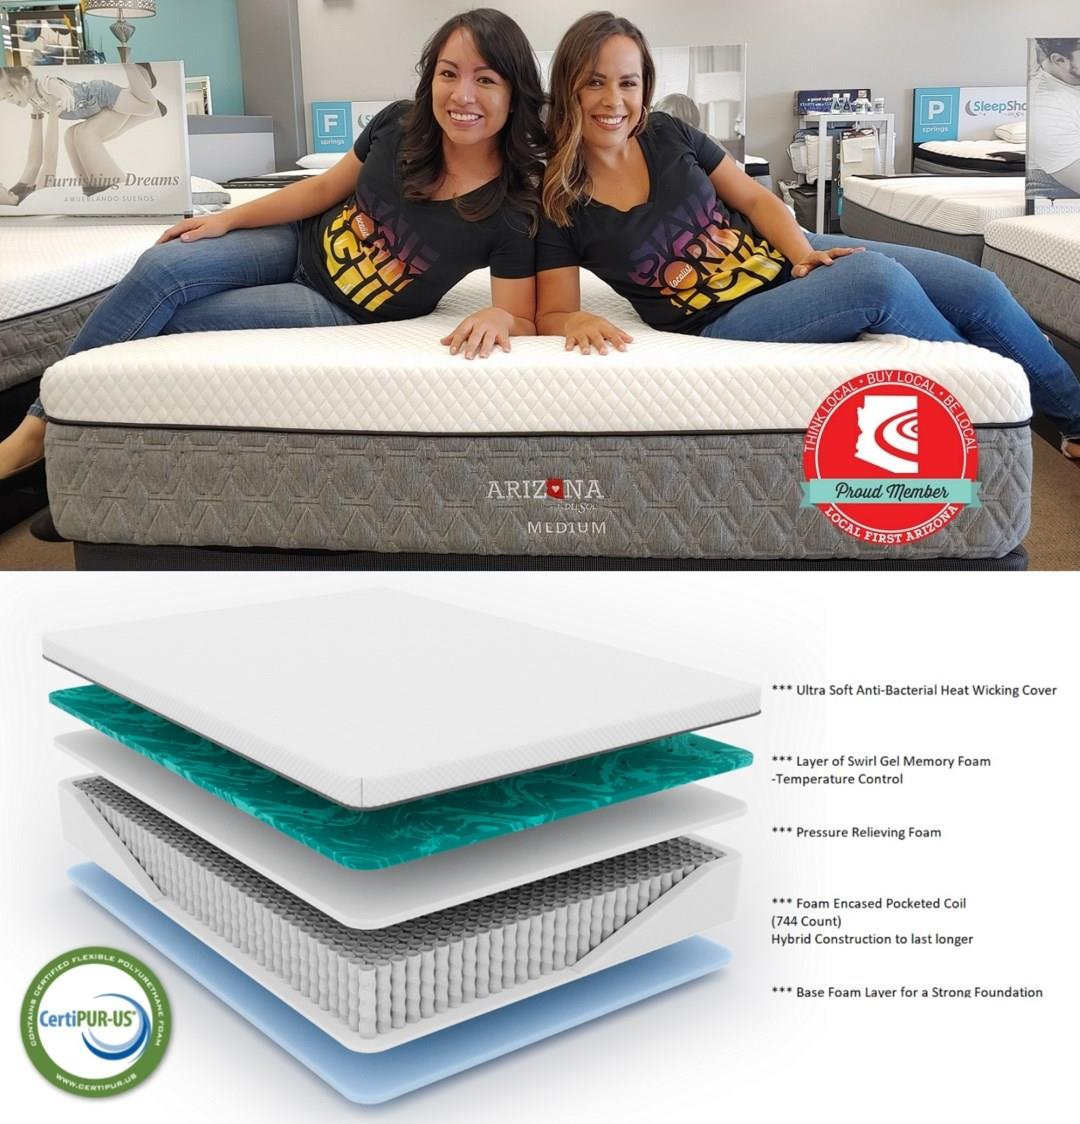 The Mattress that Supports YOU and ARIZONA!